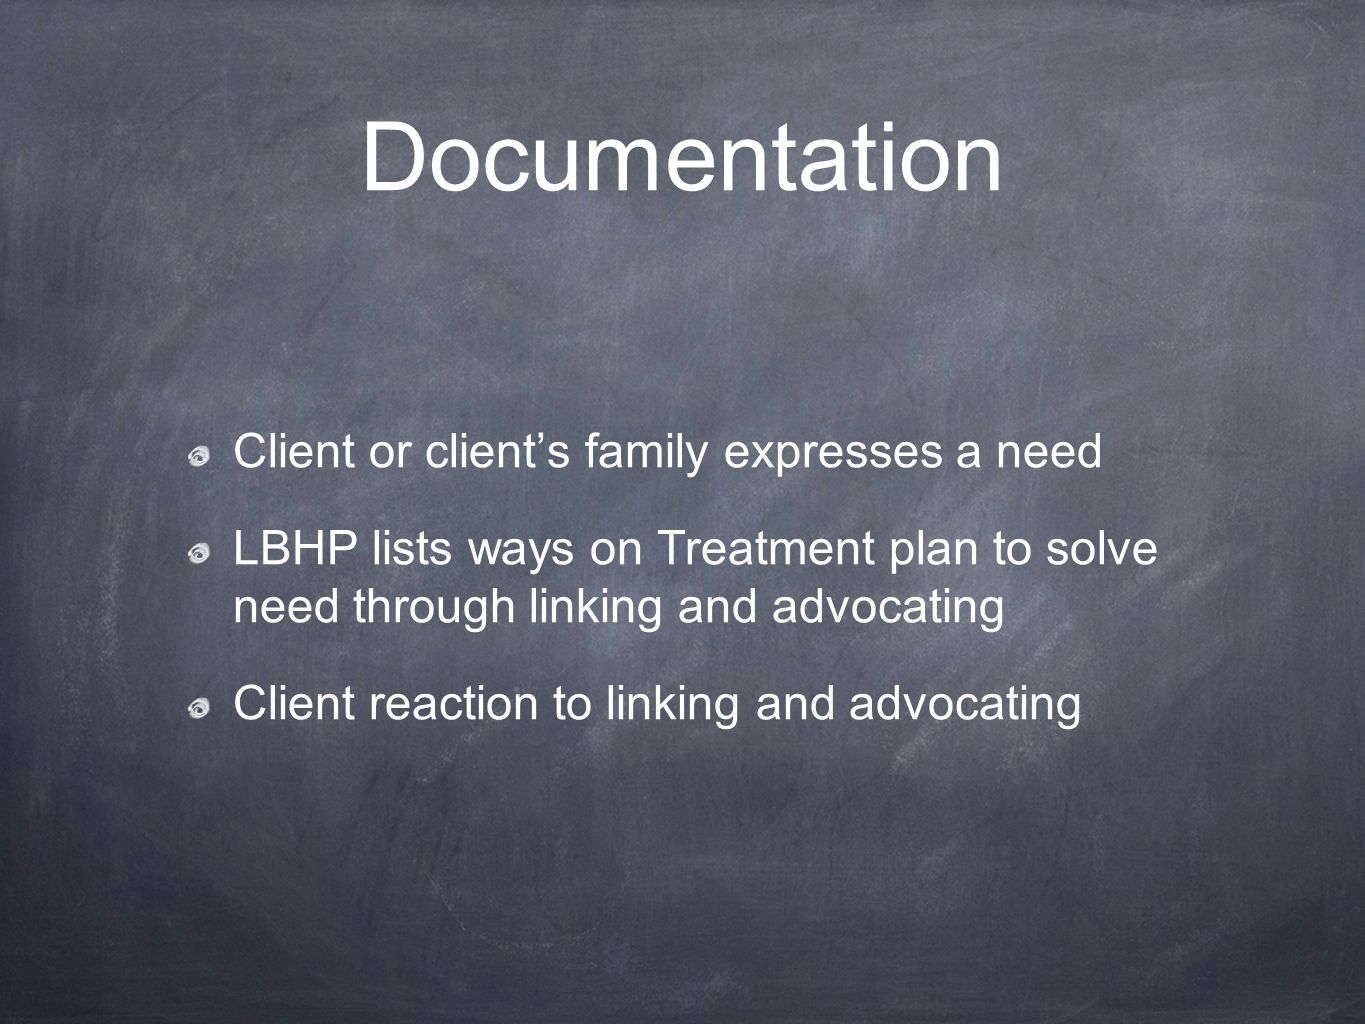 Documentation Client or client's family expresses a need LBHP lists ways on Treatment plan to solve need through linking and advocating Client reaction to linking and advocating